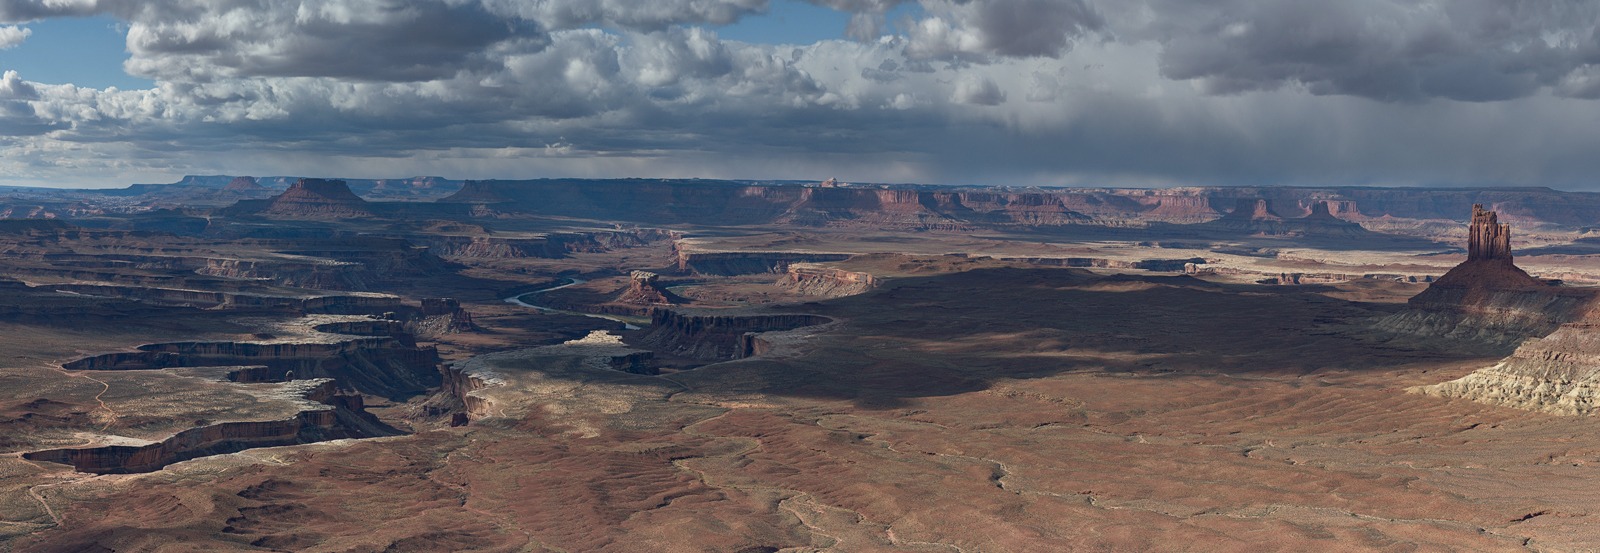 Canyonlands, panoramic, landscape, photography, storm, Green River, Utah, winter, panoramique, shadows, ombres, paysage